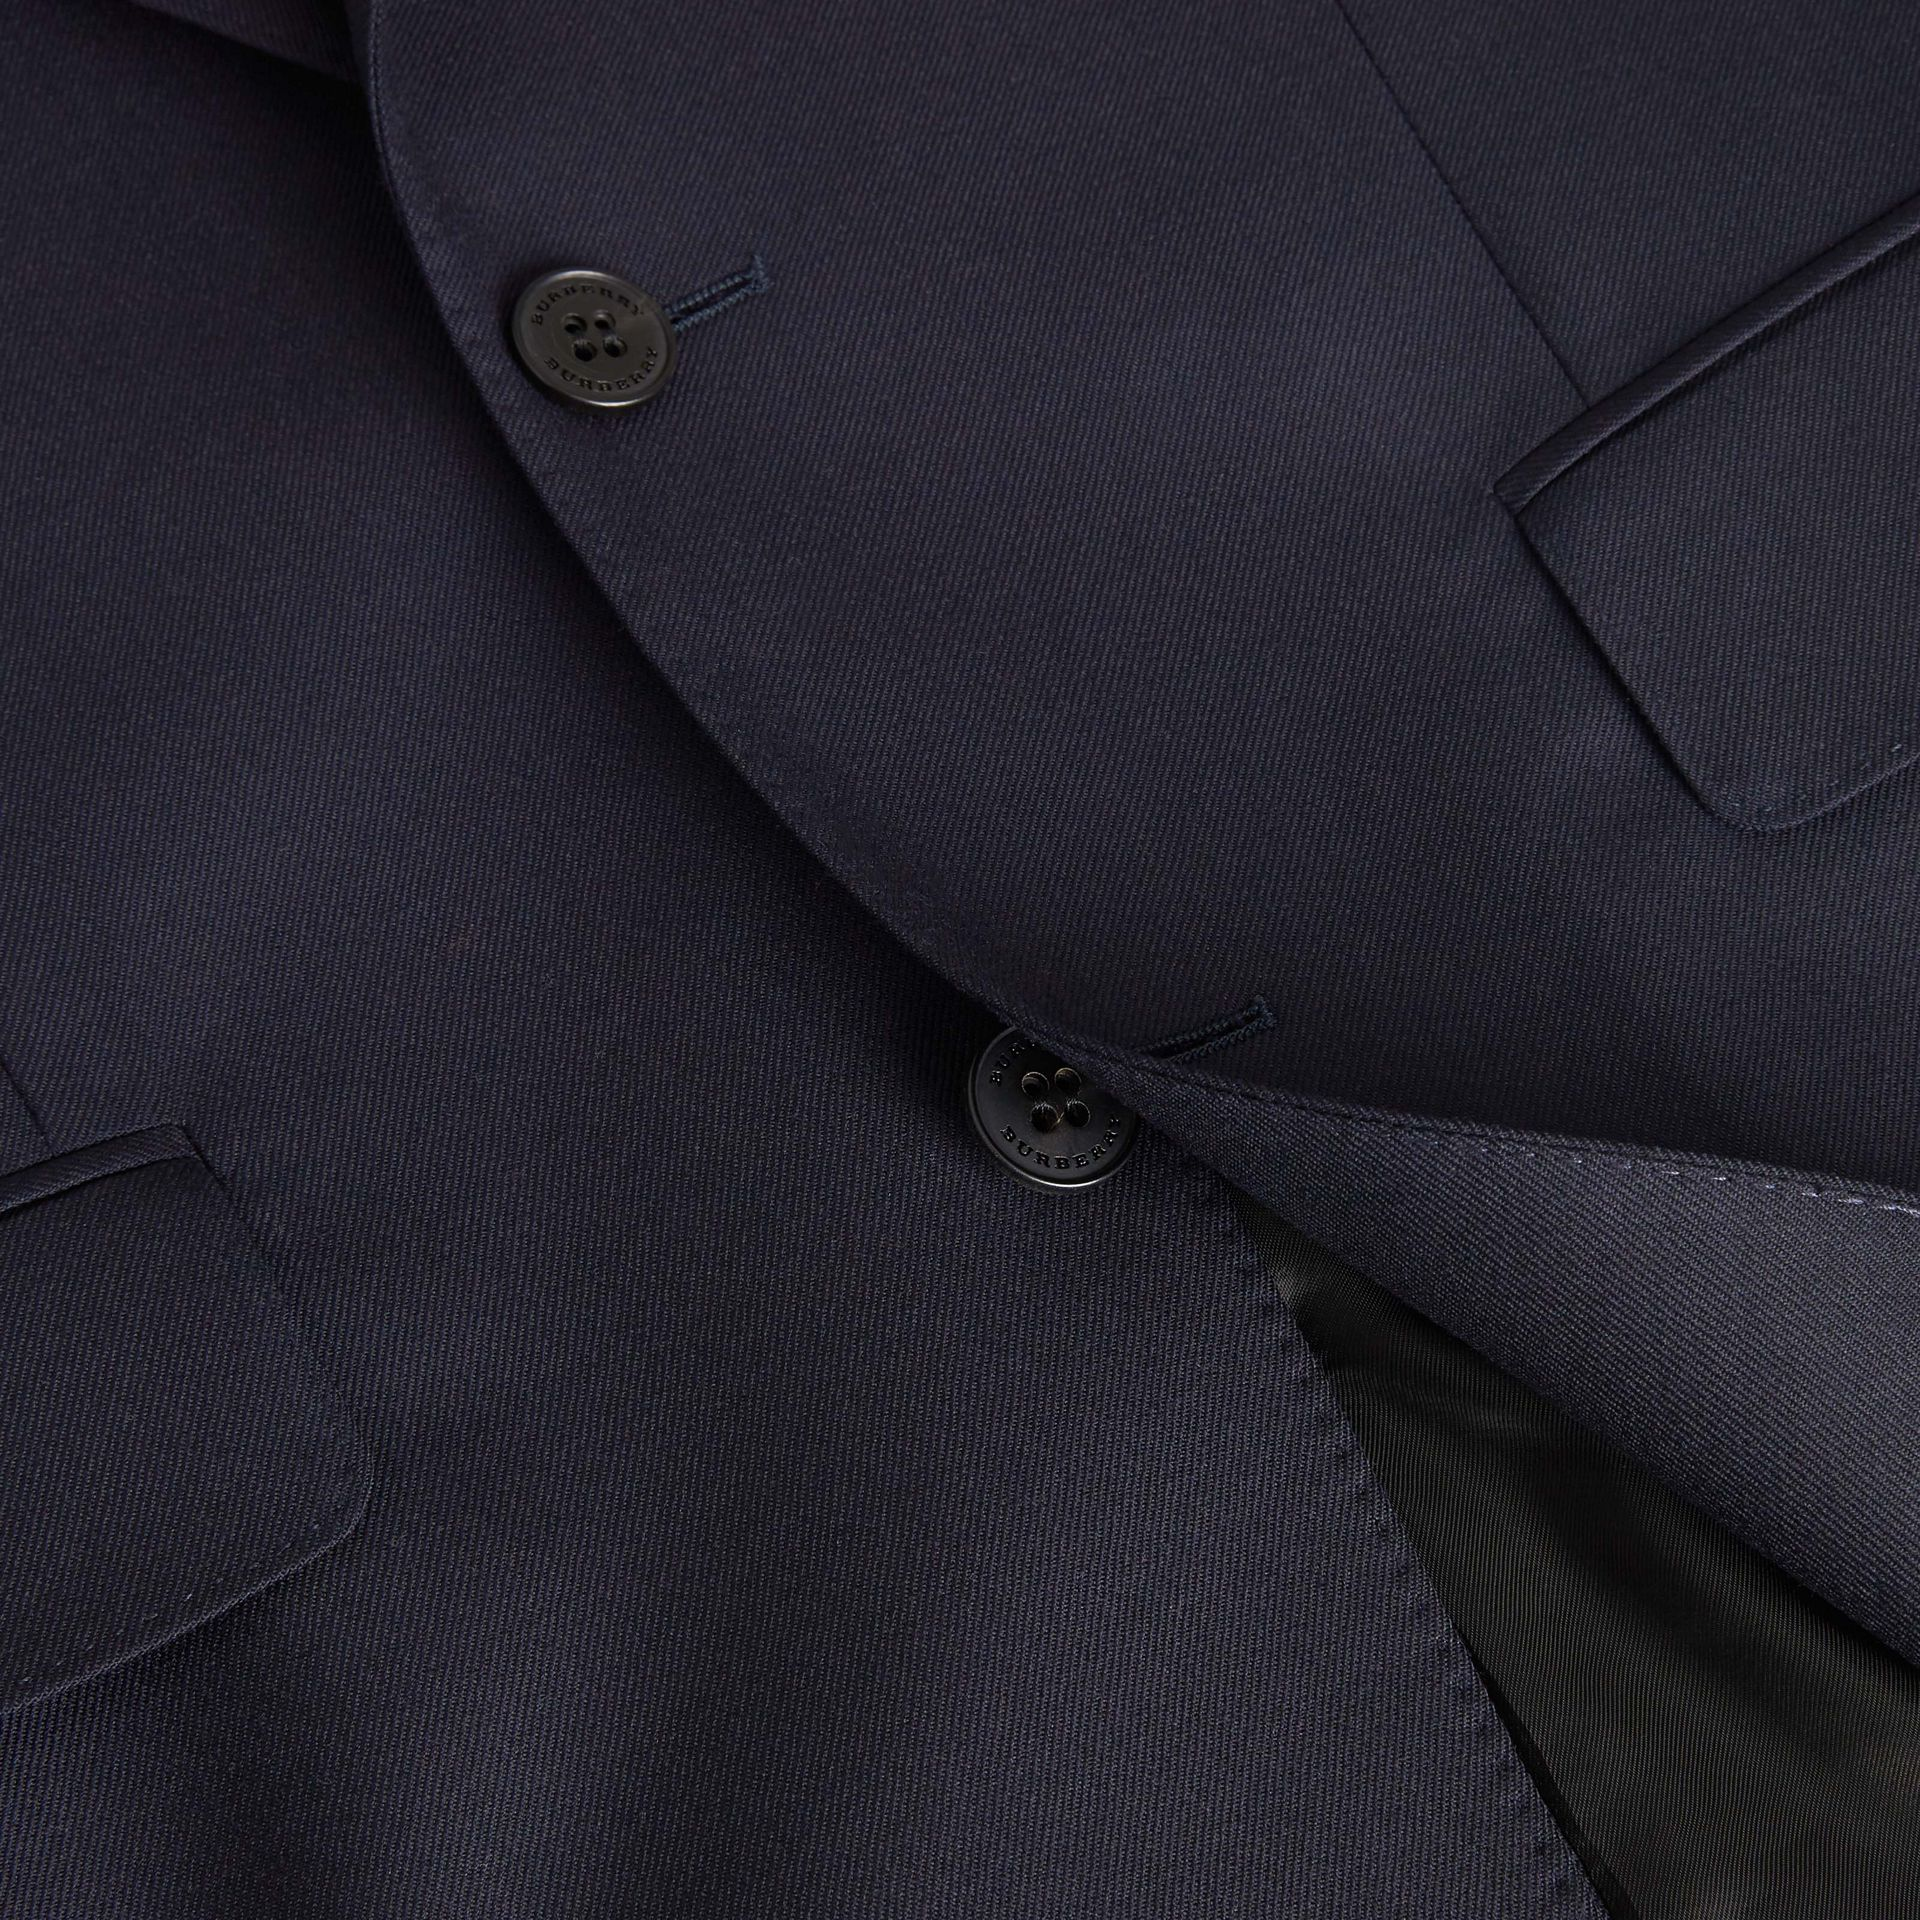 Classic Fit Wool Twill Suit in Navy - Men | Burberry Hong Kong - gallery image 9